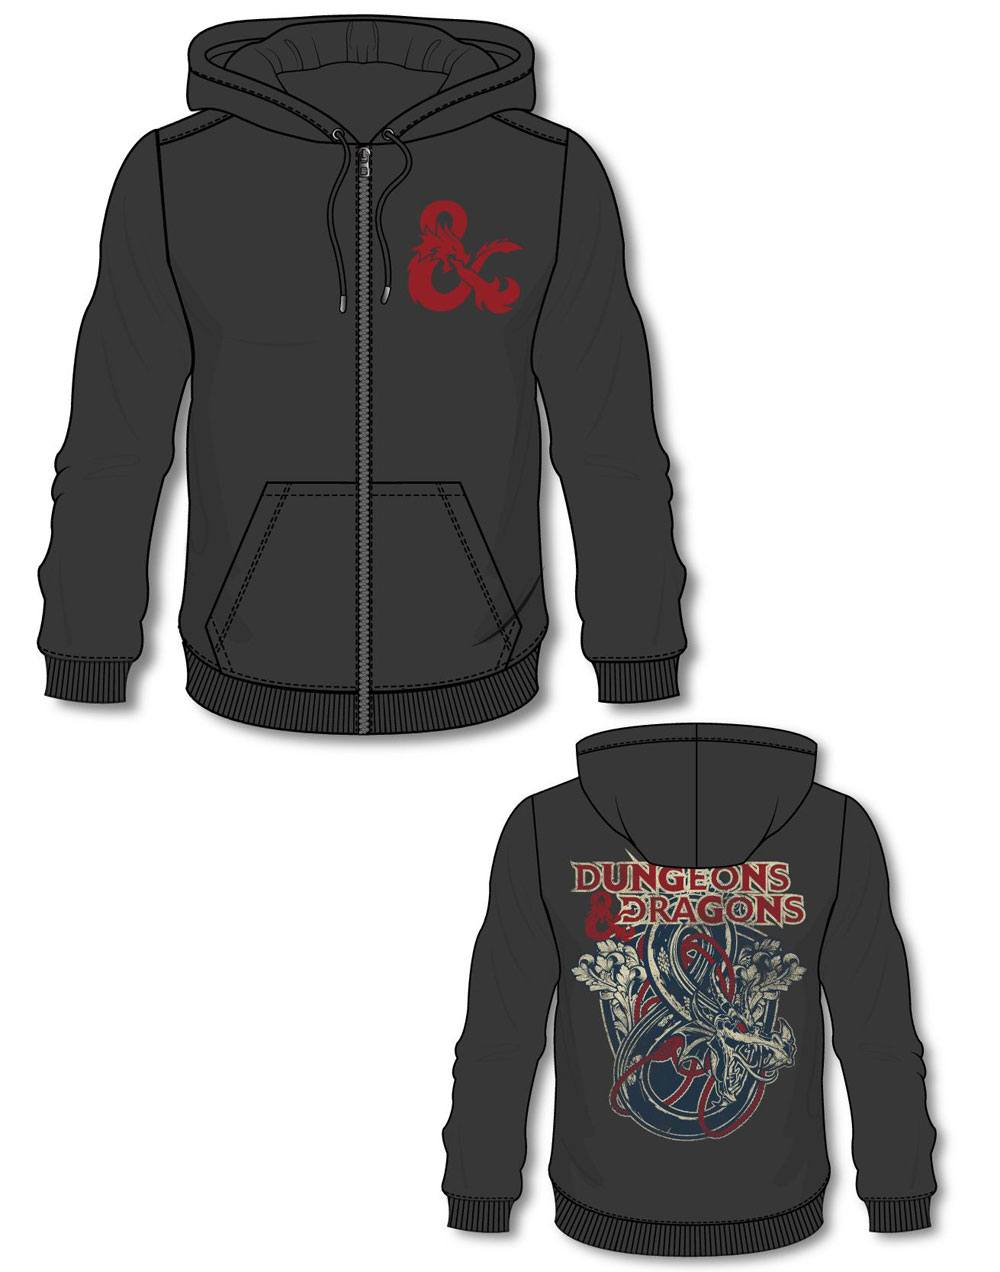 Dungeons & Dragons Hooded Sweater Iconic Logo Size M